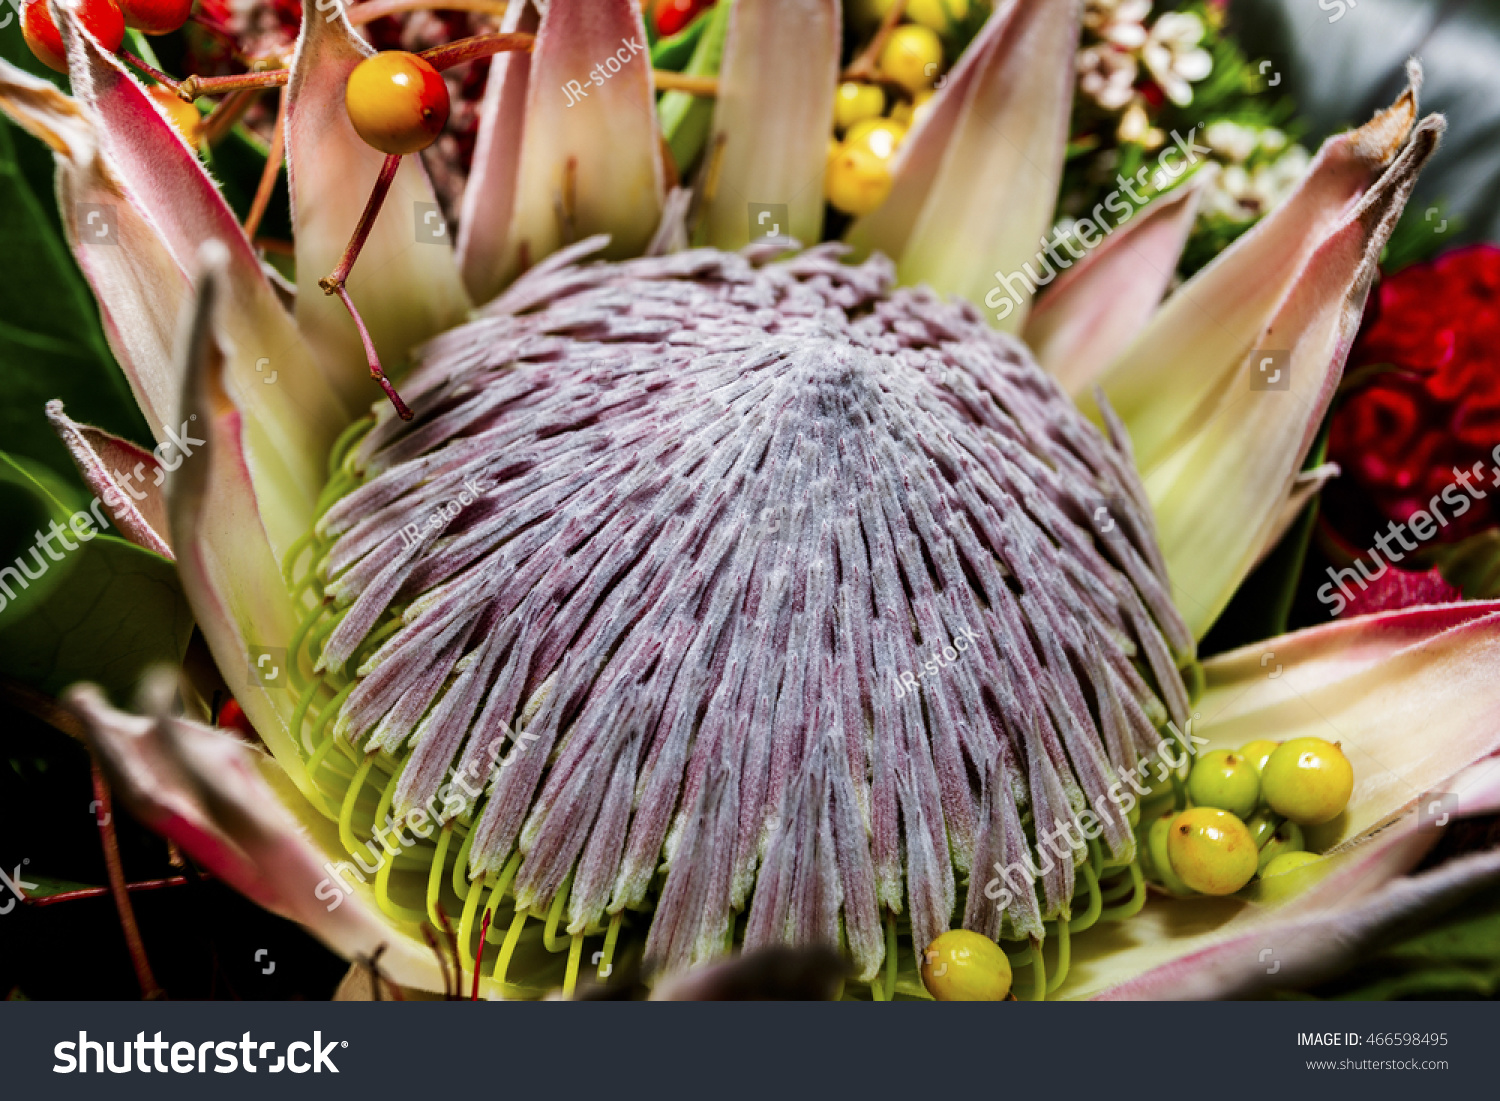 King protea flower close like lotus stock photo edit now 466598495 king protea flower close up like a lotus and calls the national flower of africa with izmirmasajfo